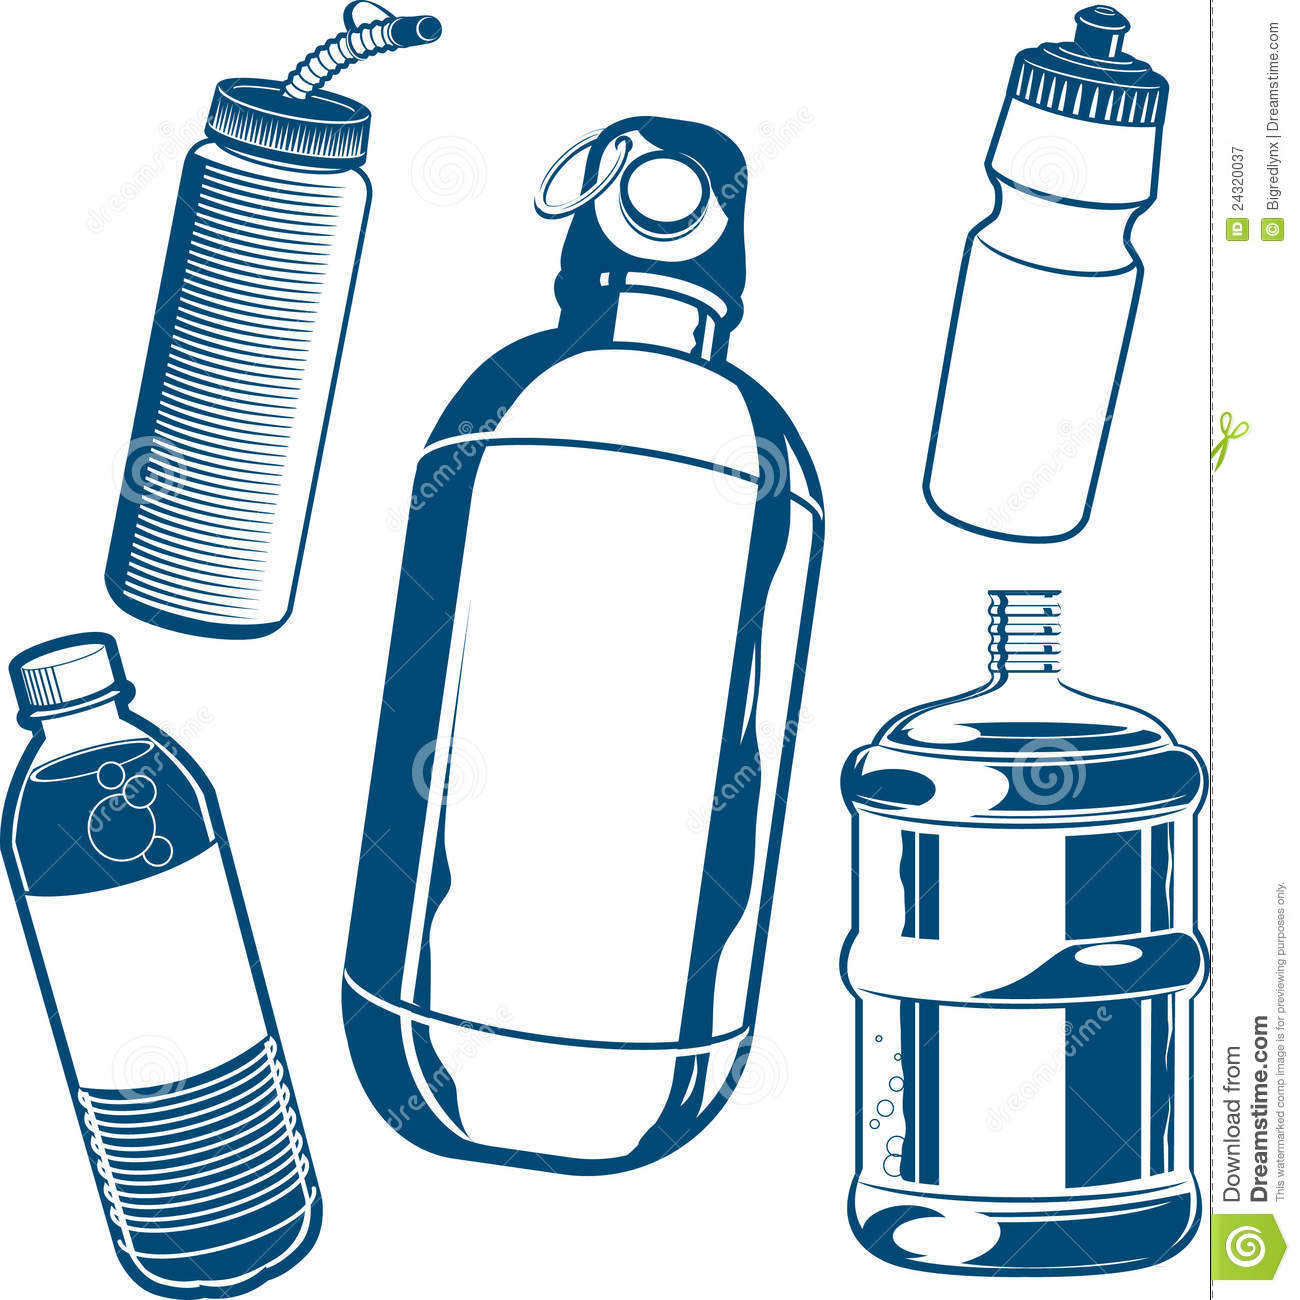 Water Bottle Coloring Page | Clipart Panda - Free Clipart Images